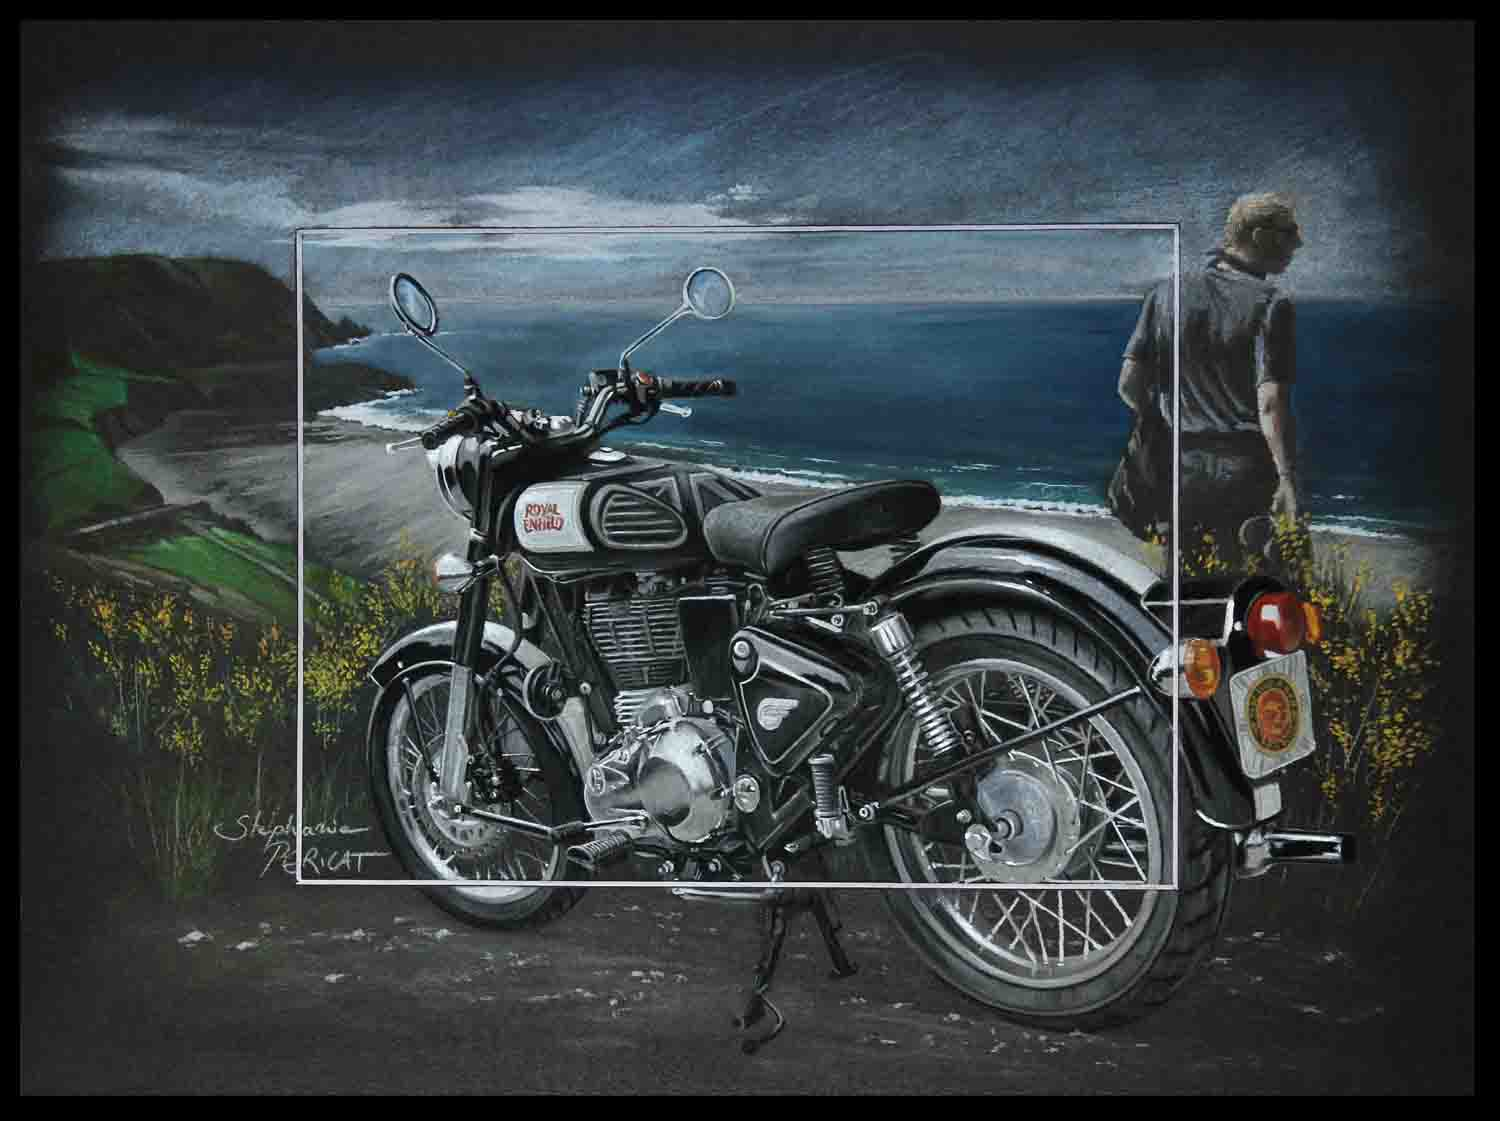 Vintage Riding (royal enfield classic) - pastel sec (soft pastel) - 30x40cm - AV for sale